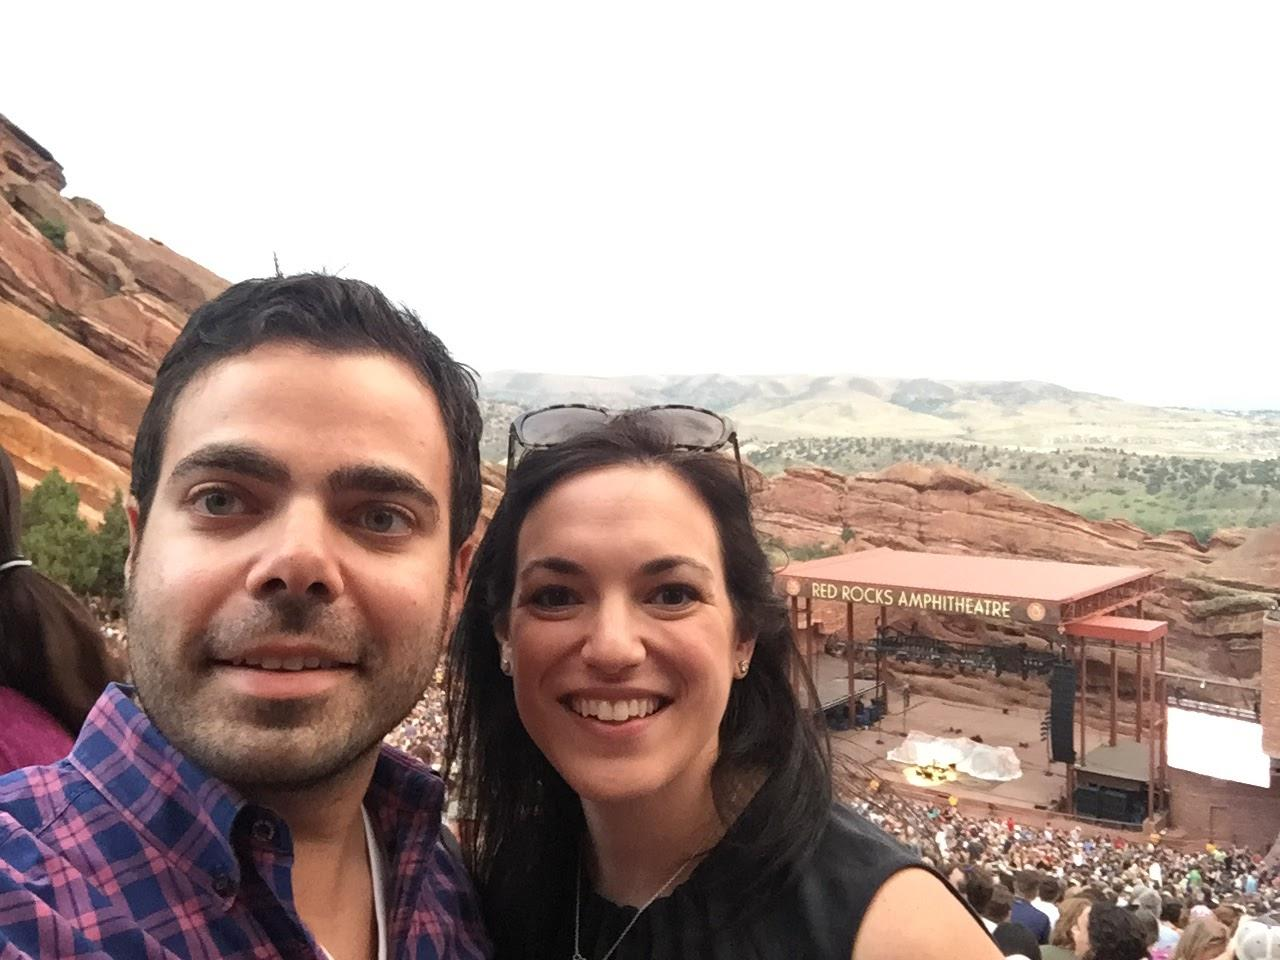 Seeing The Avett Brothers @ Red Rocks! (Denver, CO)